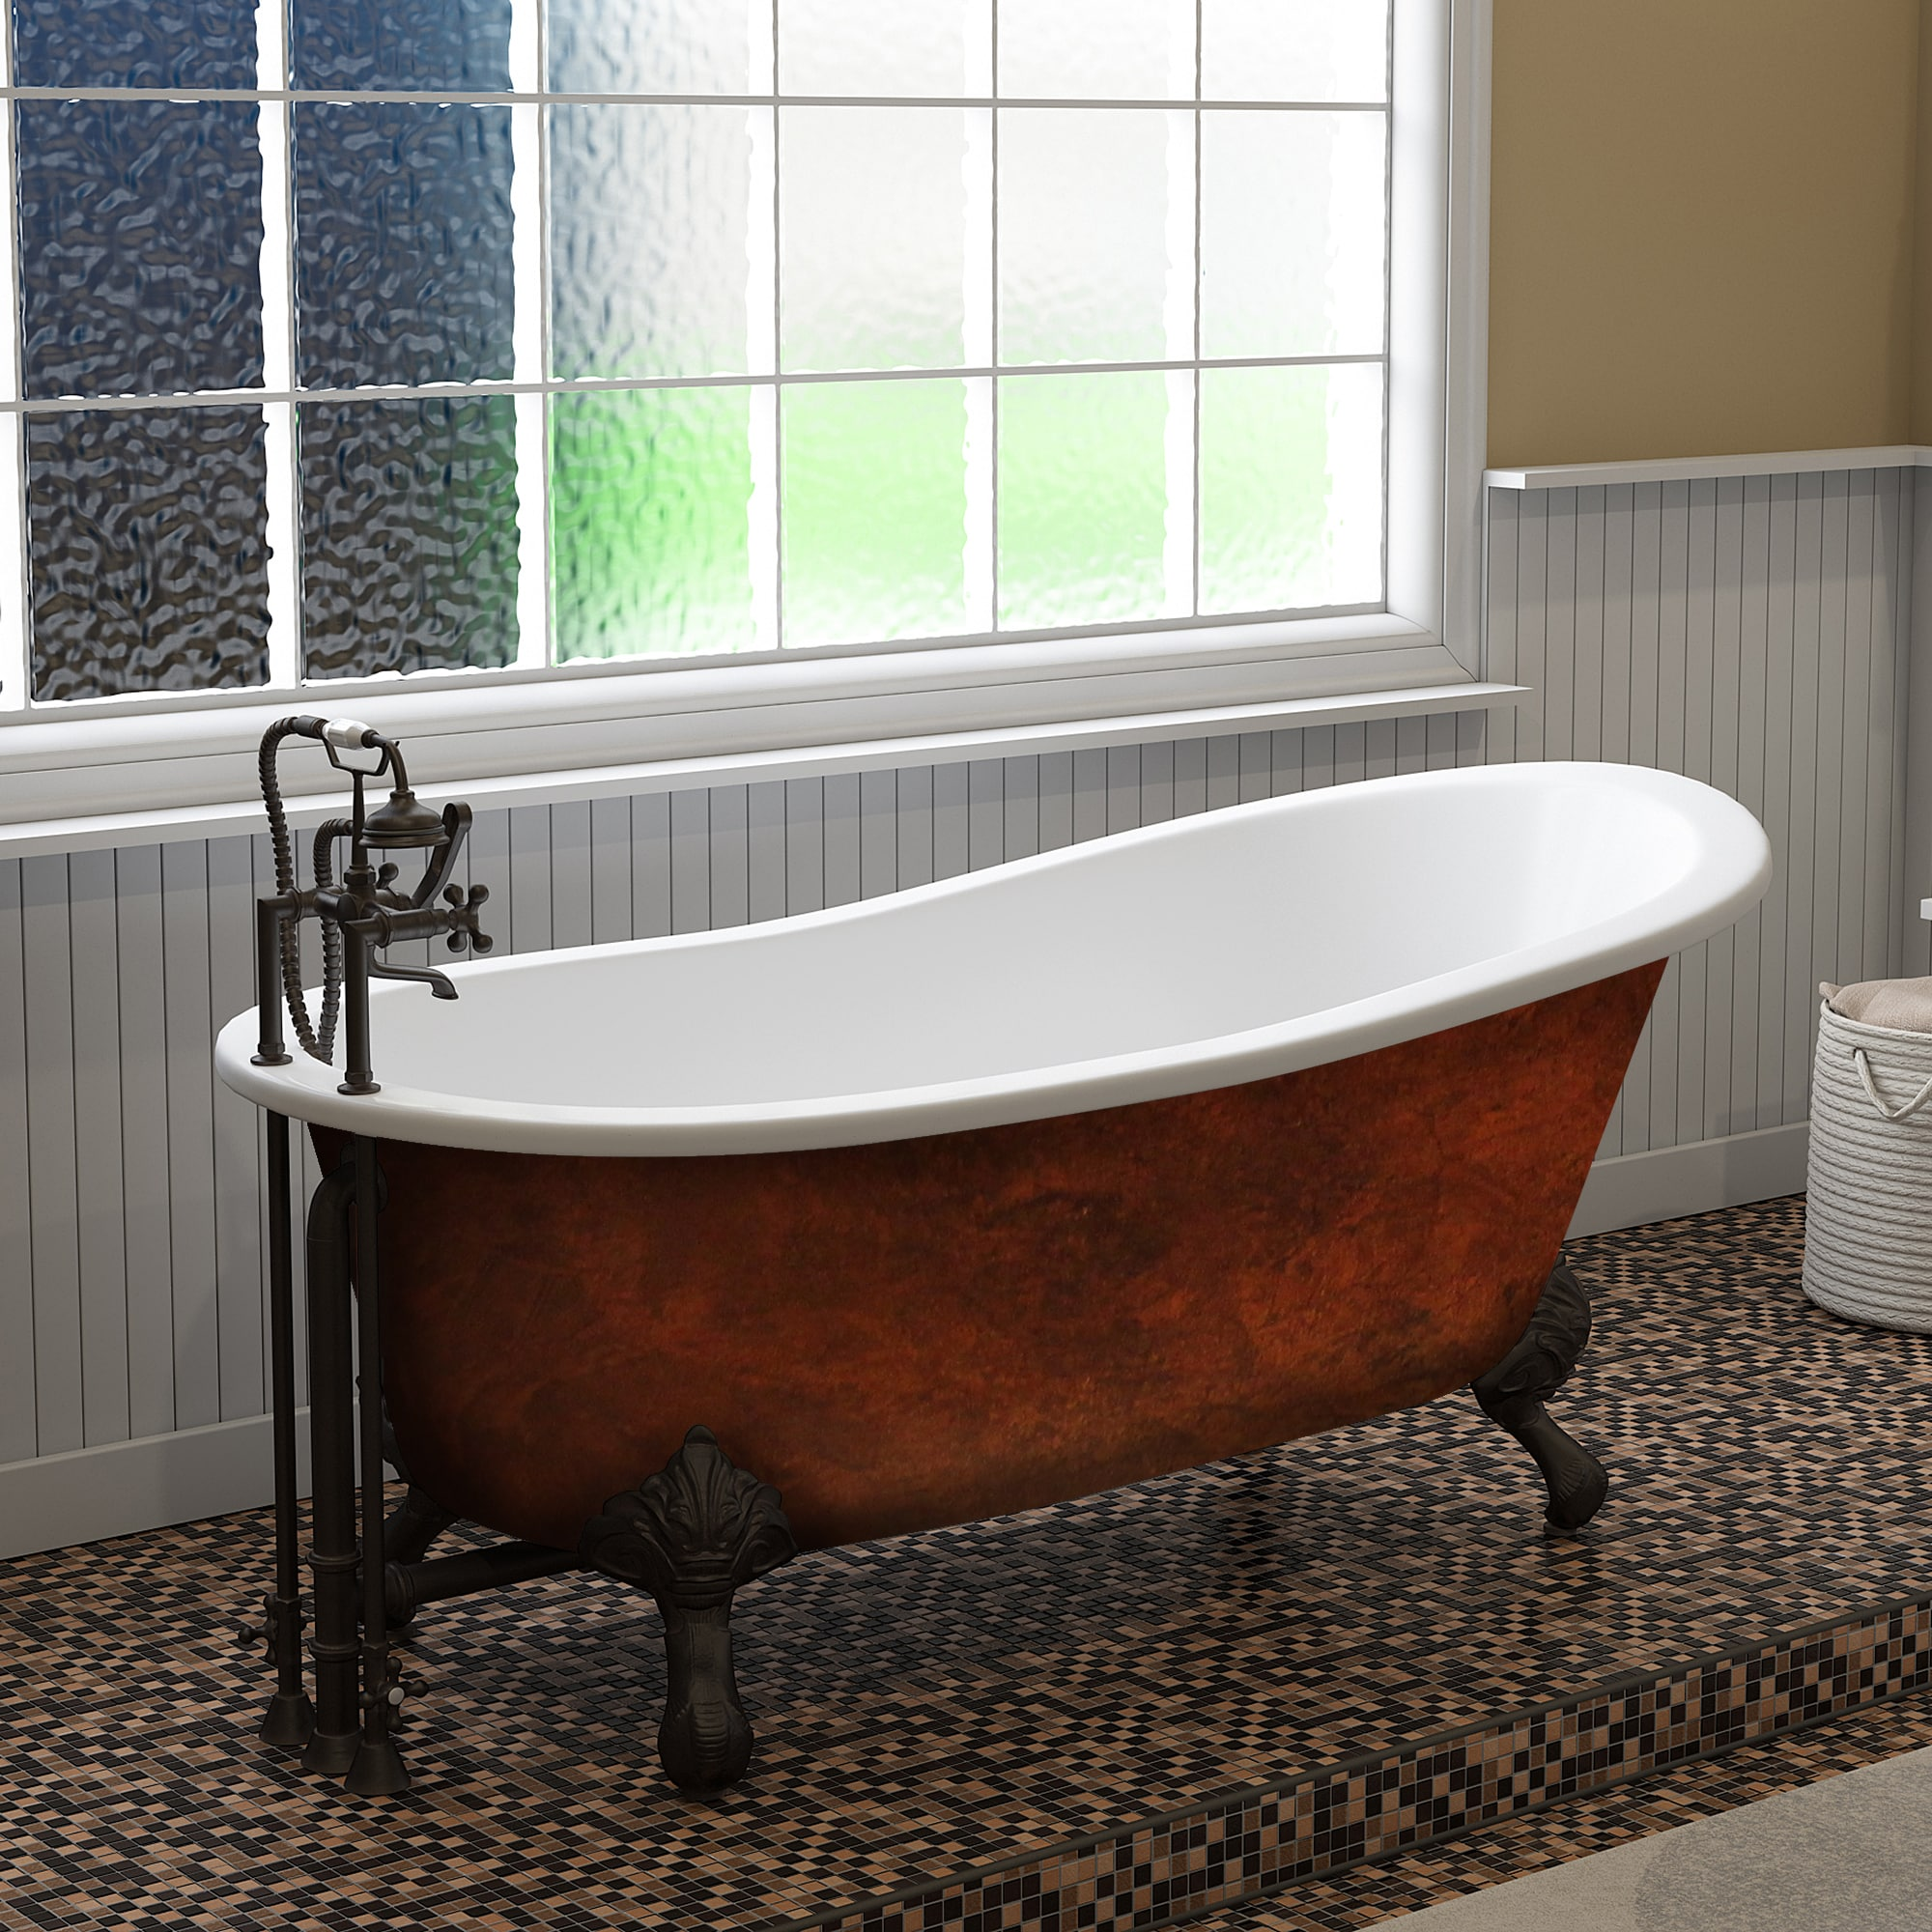 67 Inch Cast Iron Tub Slipper Copper Bronze Clawfoot Tub